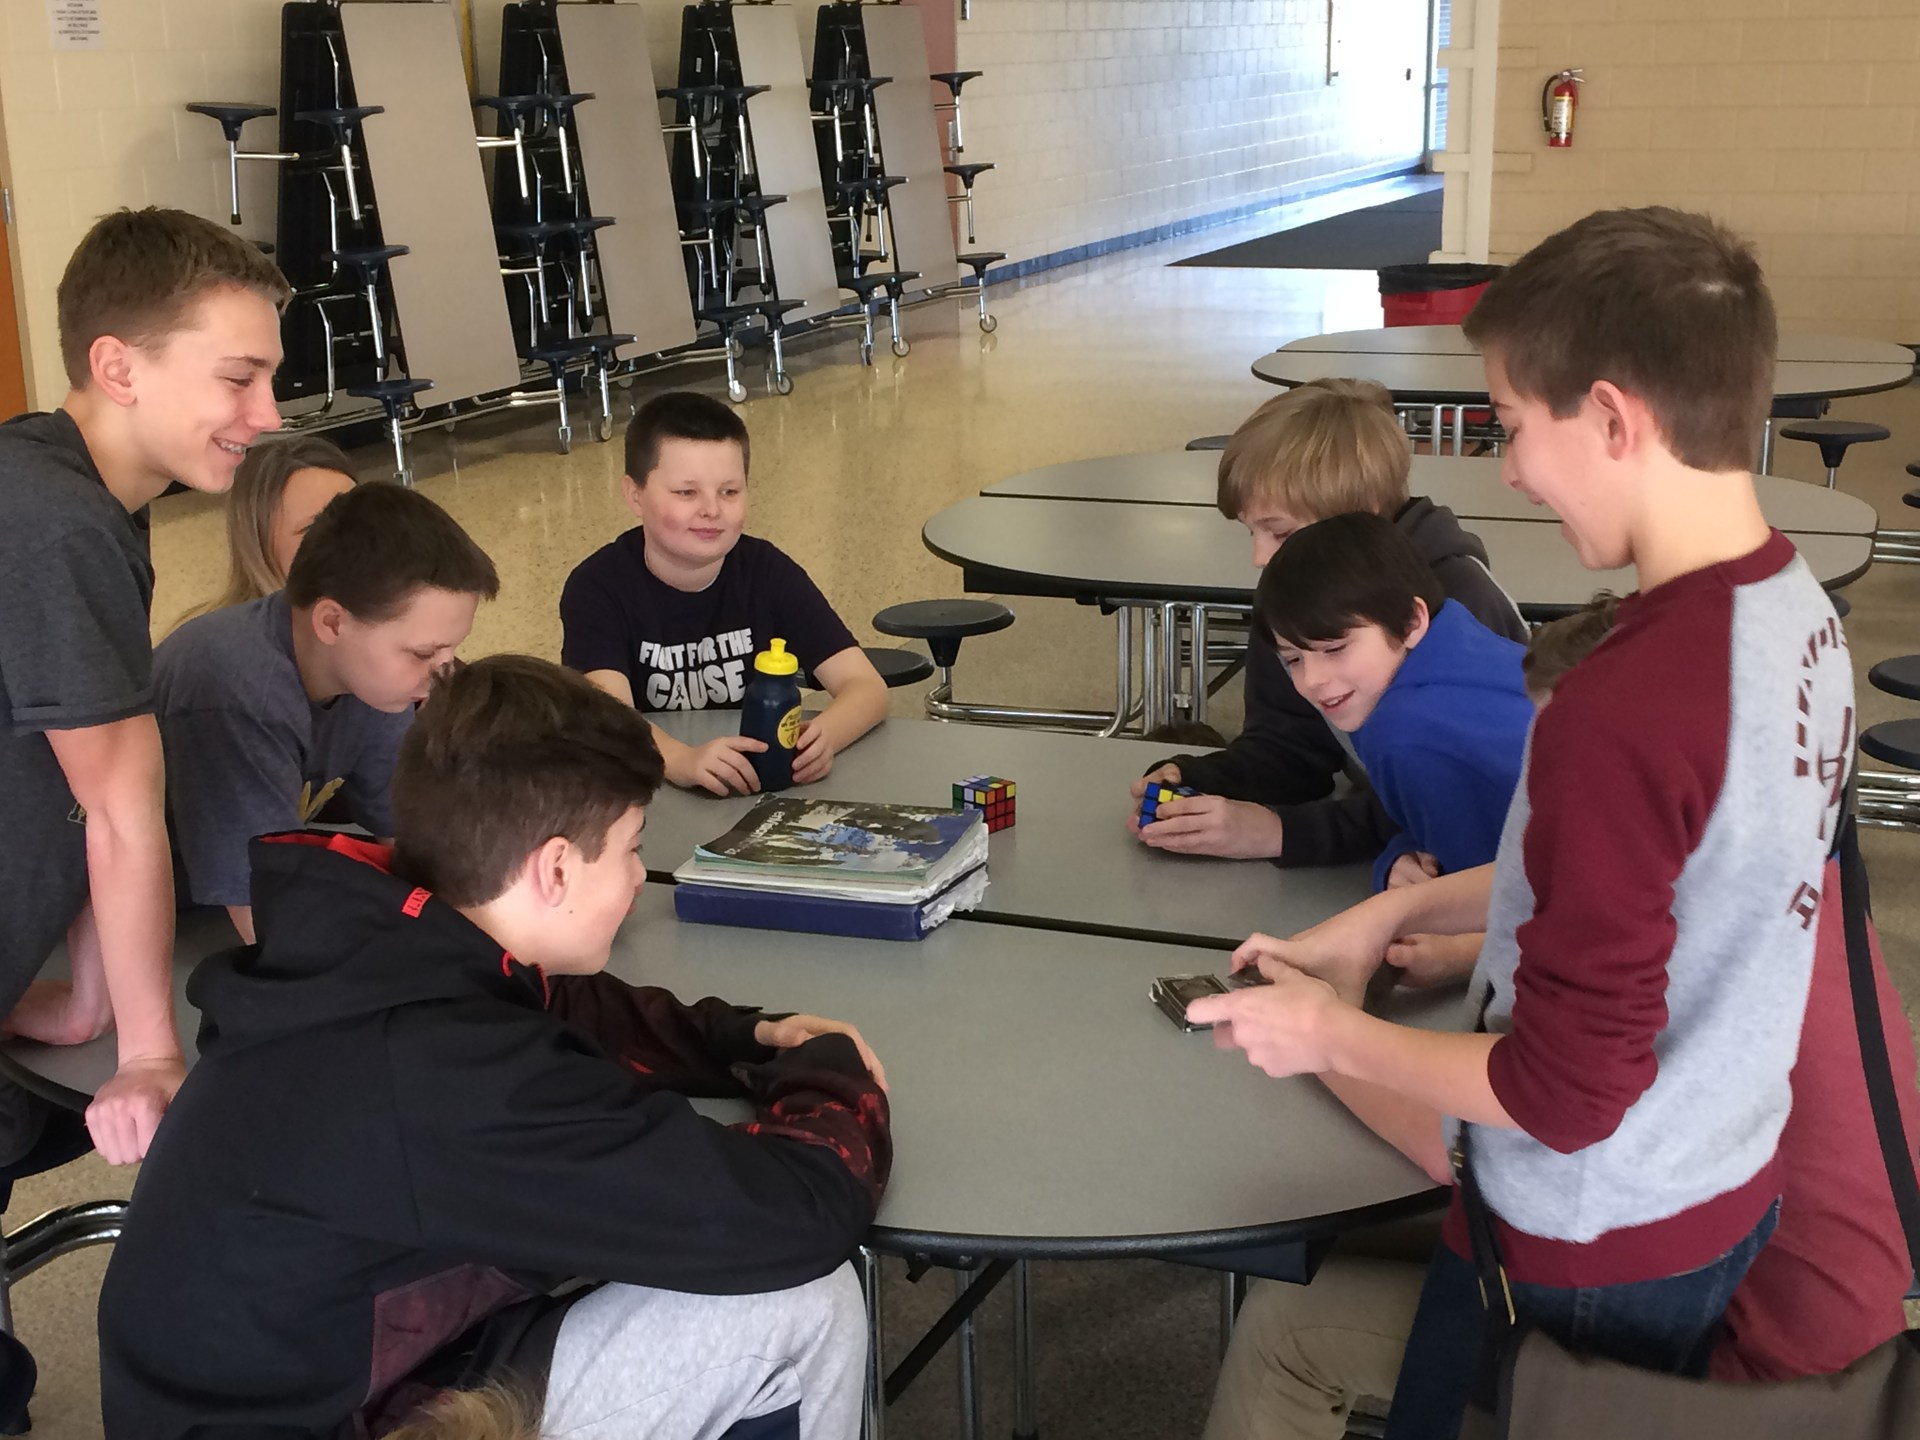 Students take part in an enrichment activity of learning Rubik's cube strategies during WIN time.